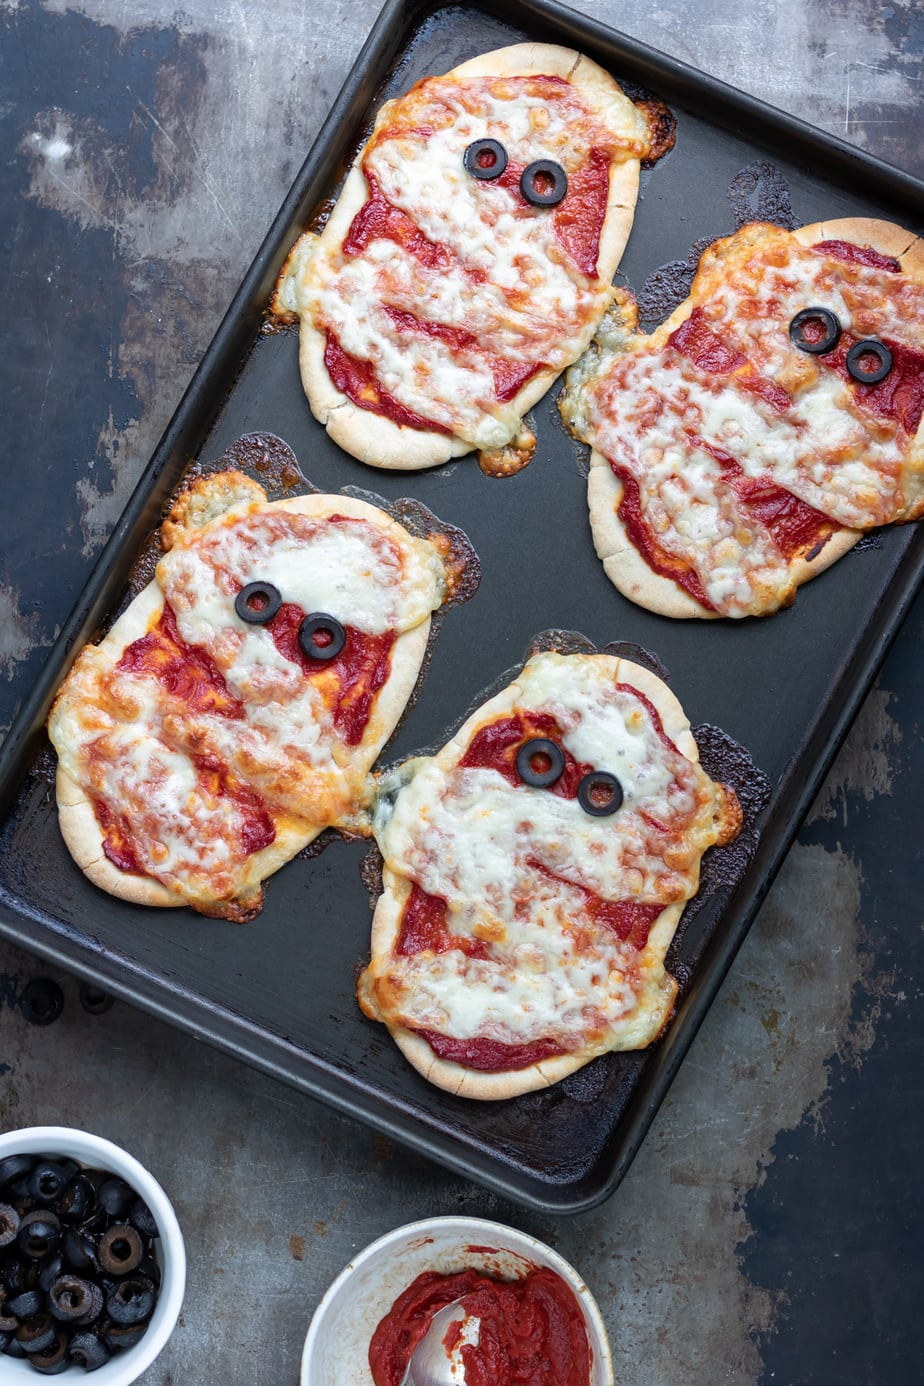 Baking sheet with cooked Halloween mummy pita pizzas.